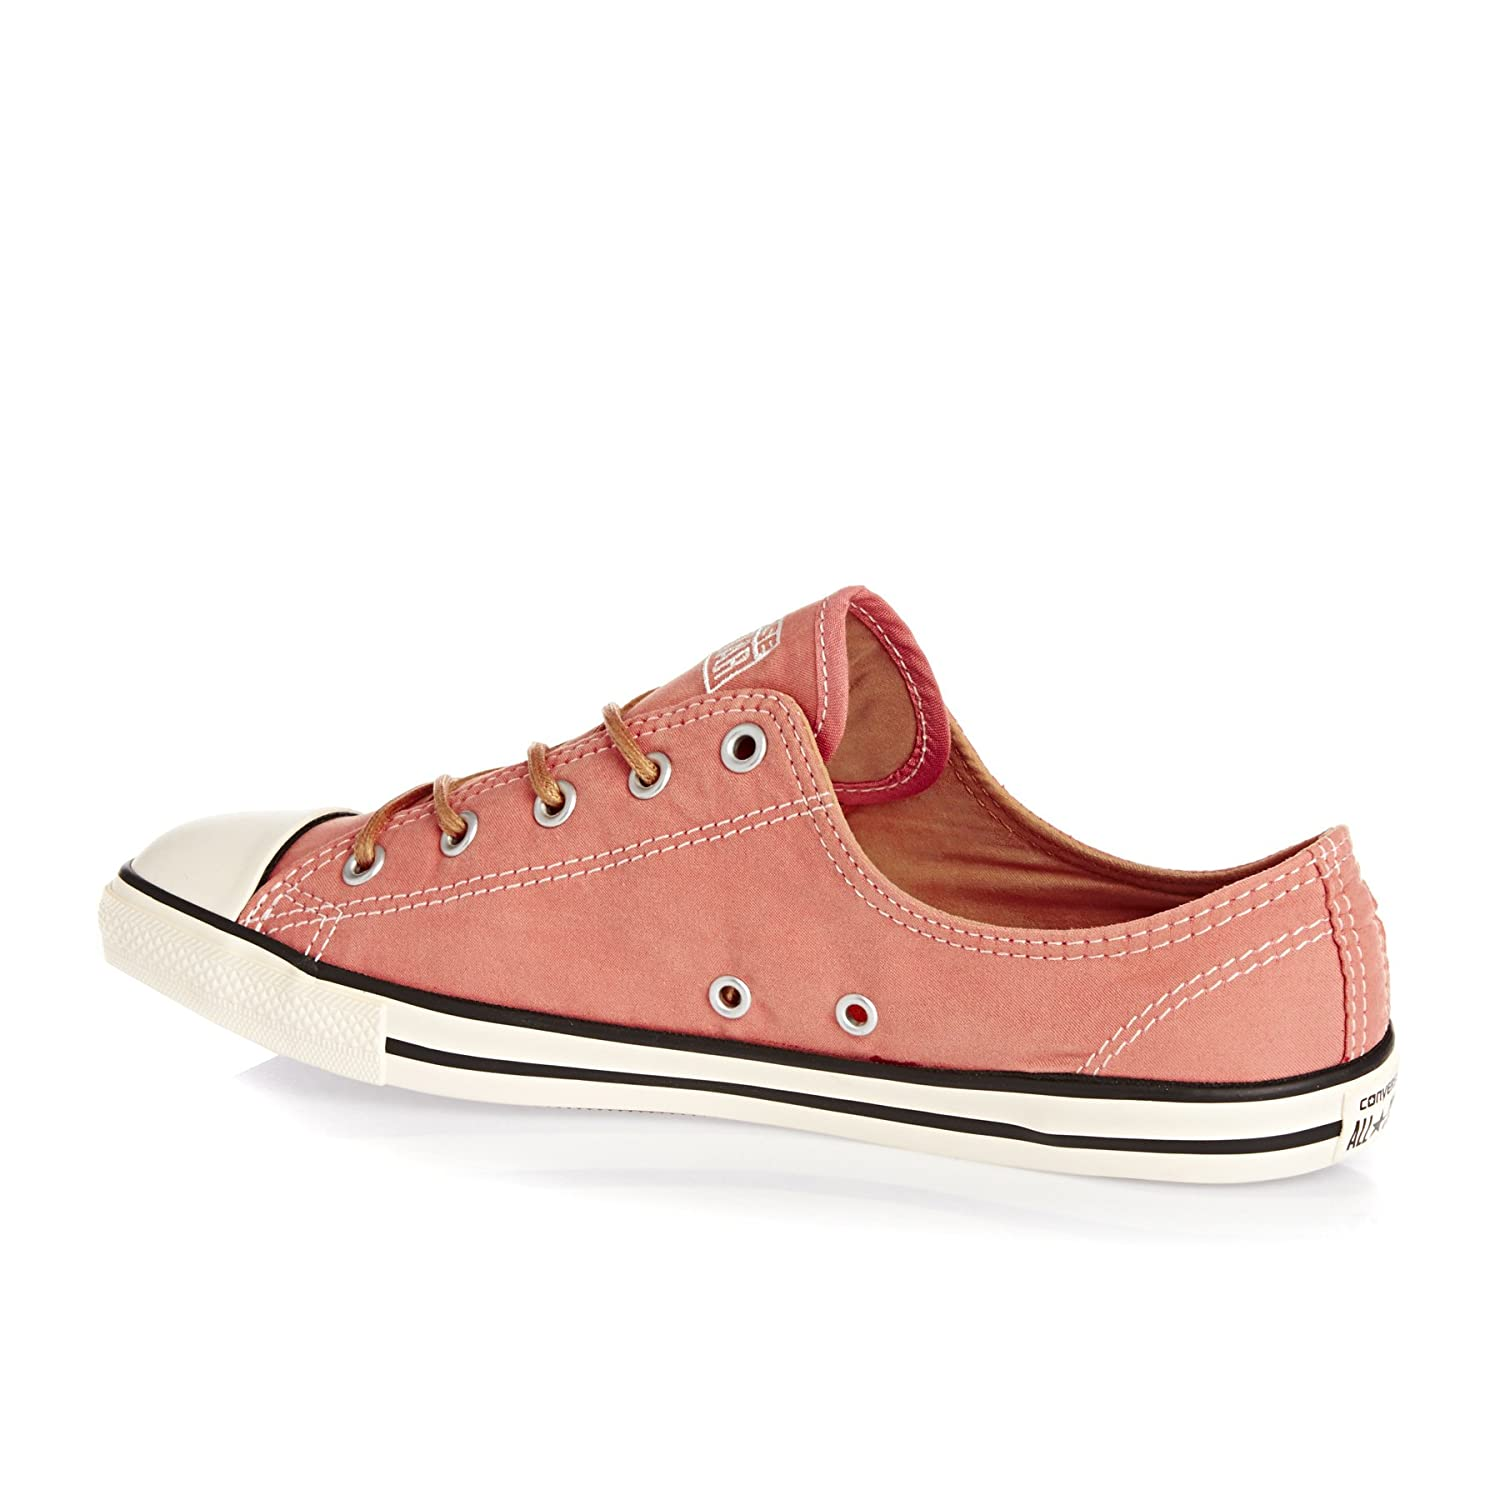 d99b800802e1e6 Converse 553418 °C Dainty Womens Trainers Peached Canvas Pink Blush Biscuit Egret  Pink Size  5.5 UK  Amazon.co.uk  Shoes   Bags